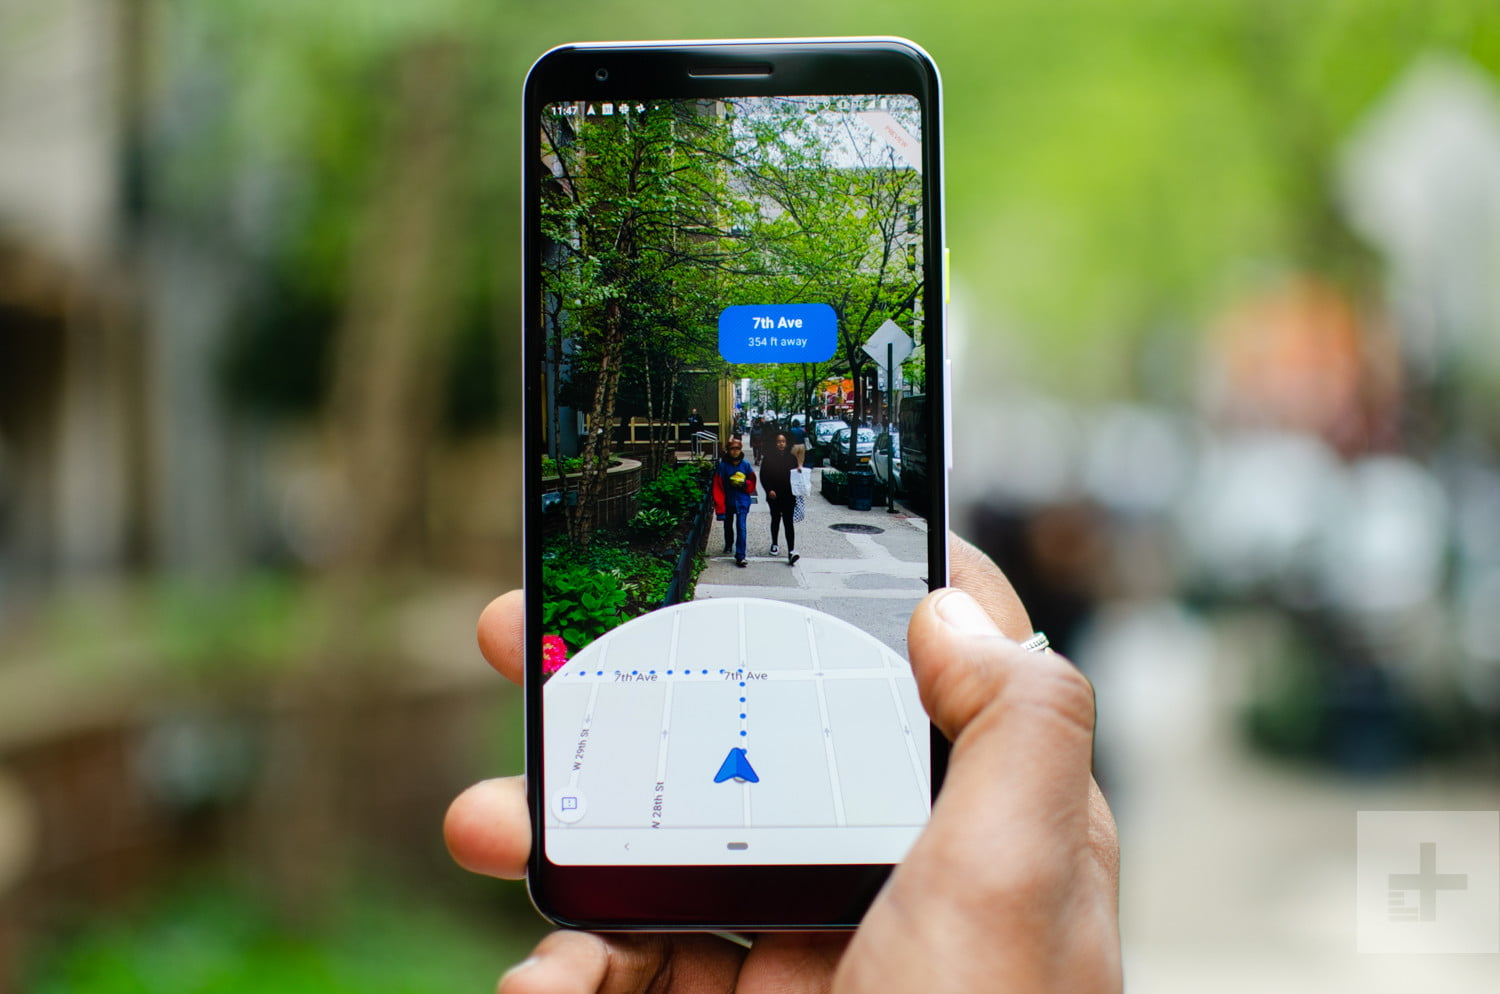 How To Navigate With The AR Mode In Google Maps | Digital Trends Google Maps Ai on google cy, google bo, google api, google aids, google si, google tg, google bt, google fake, google nc, google eg, google antigravity, google ge, google tz, google ti, google ey, google deepmind, google wo, google ig, google gameplay,